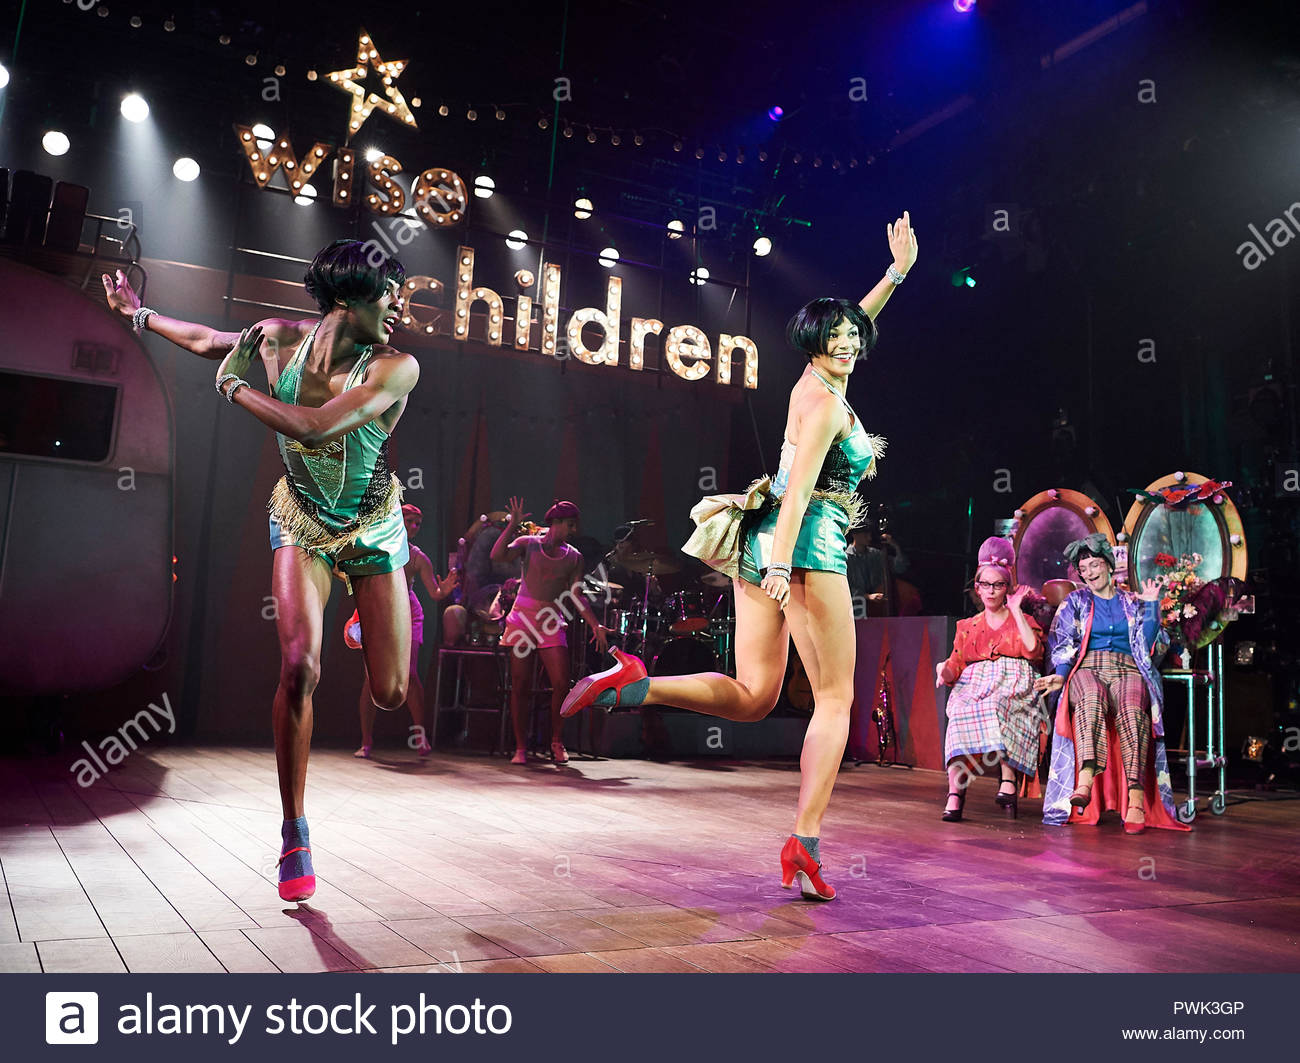 London, UK. 15th October, 2018. Wise Children by Angela Carter, adapted and directed by Emma Rice. With Omari Douglas as Showgirl Nora, Melissa James as Showgirl Dora.Opens at The Old Vic Theatre on 19/10/18. CREDIT Geraint Lewis EDITORIAL USE ONLY Credit: Geraint Lewis/Alamy Live News - Stock Image